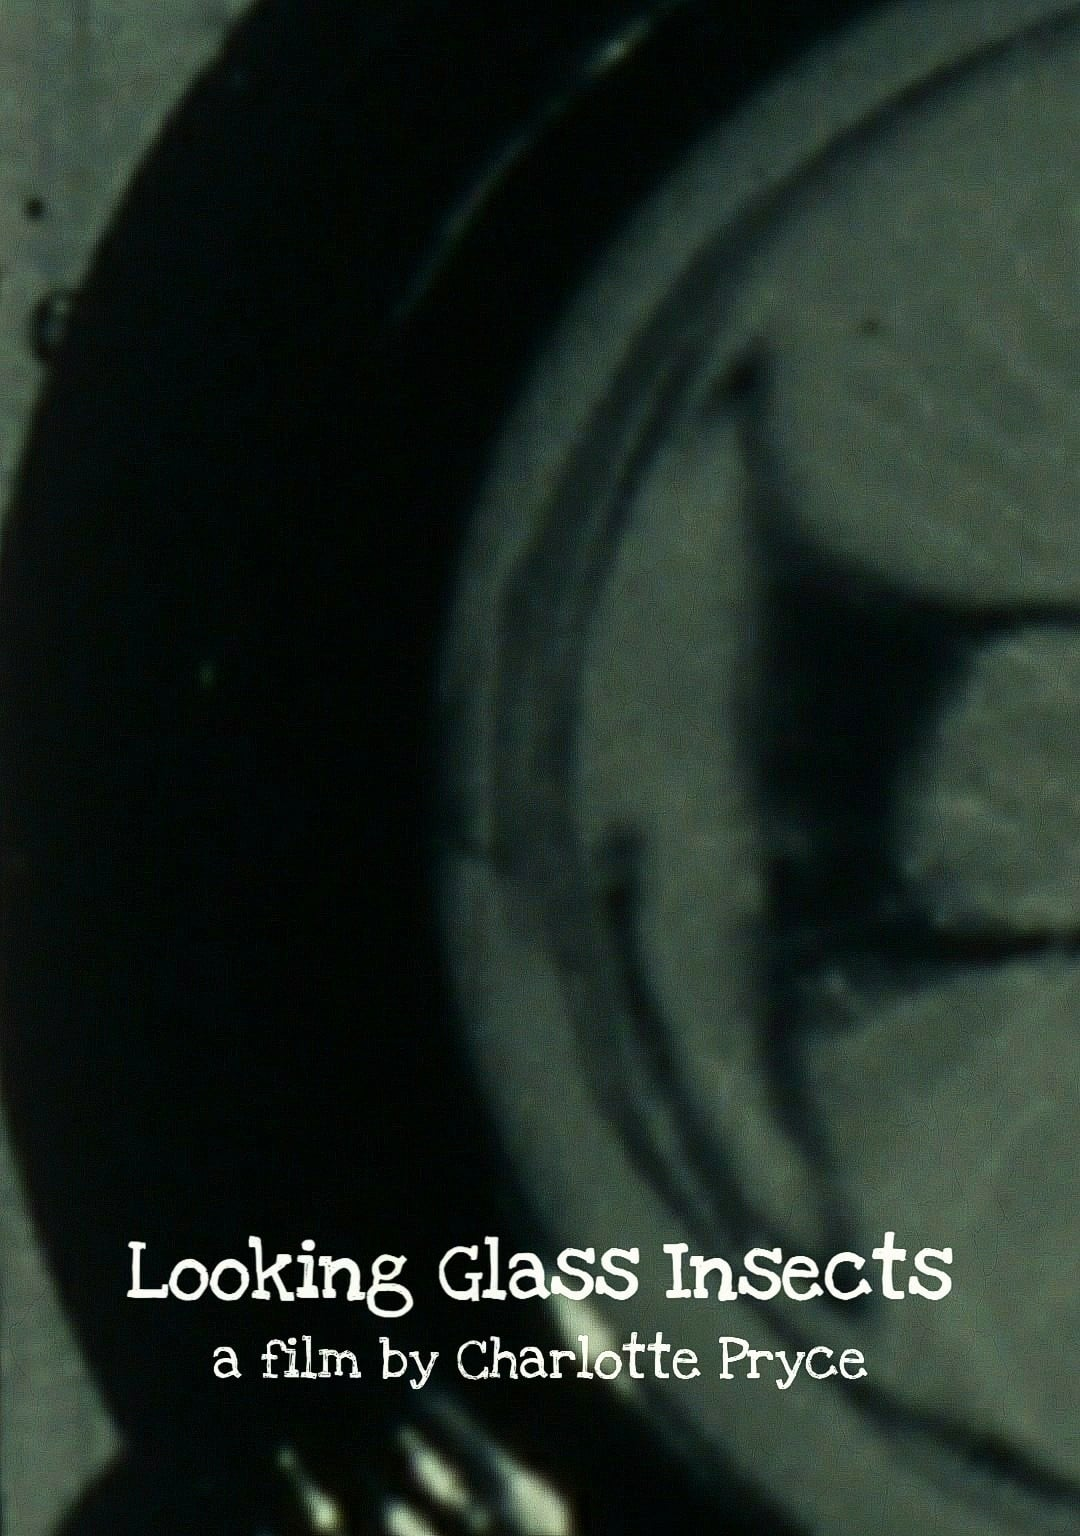 Looking Glass Insects